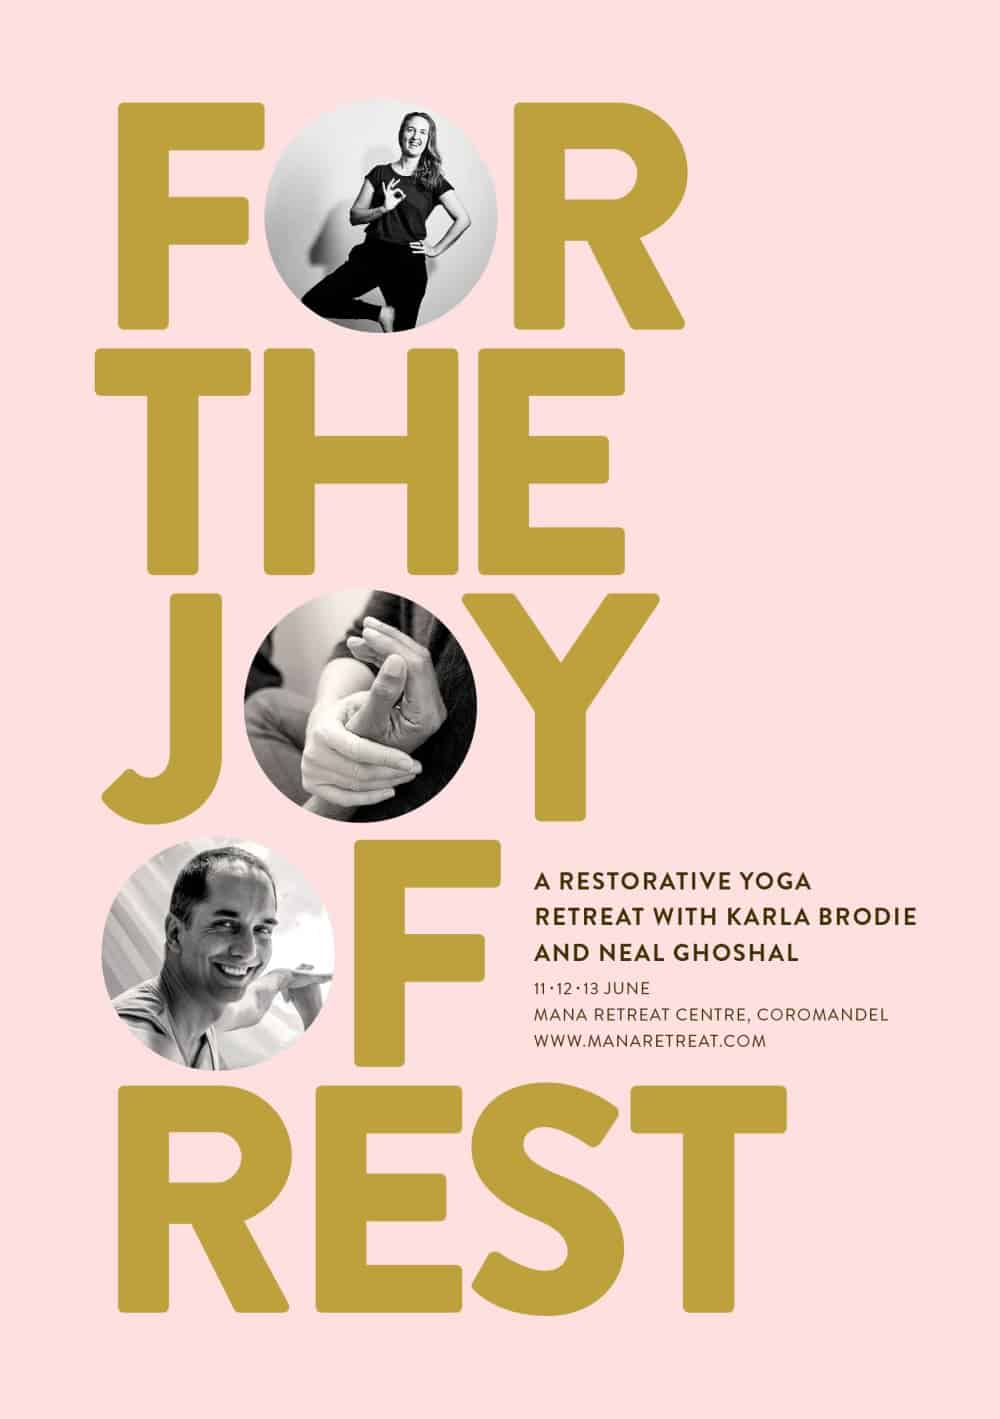 For The Joy Of Rest, Restorative Yoga Retreat, 2021, Mana Retreat, with Neal Ghoshal and Karla Brodie